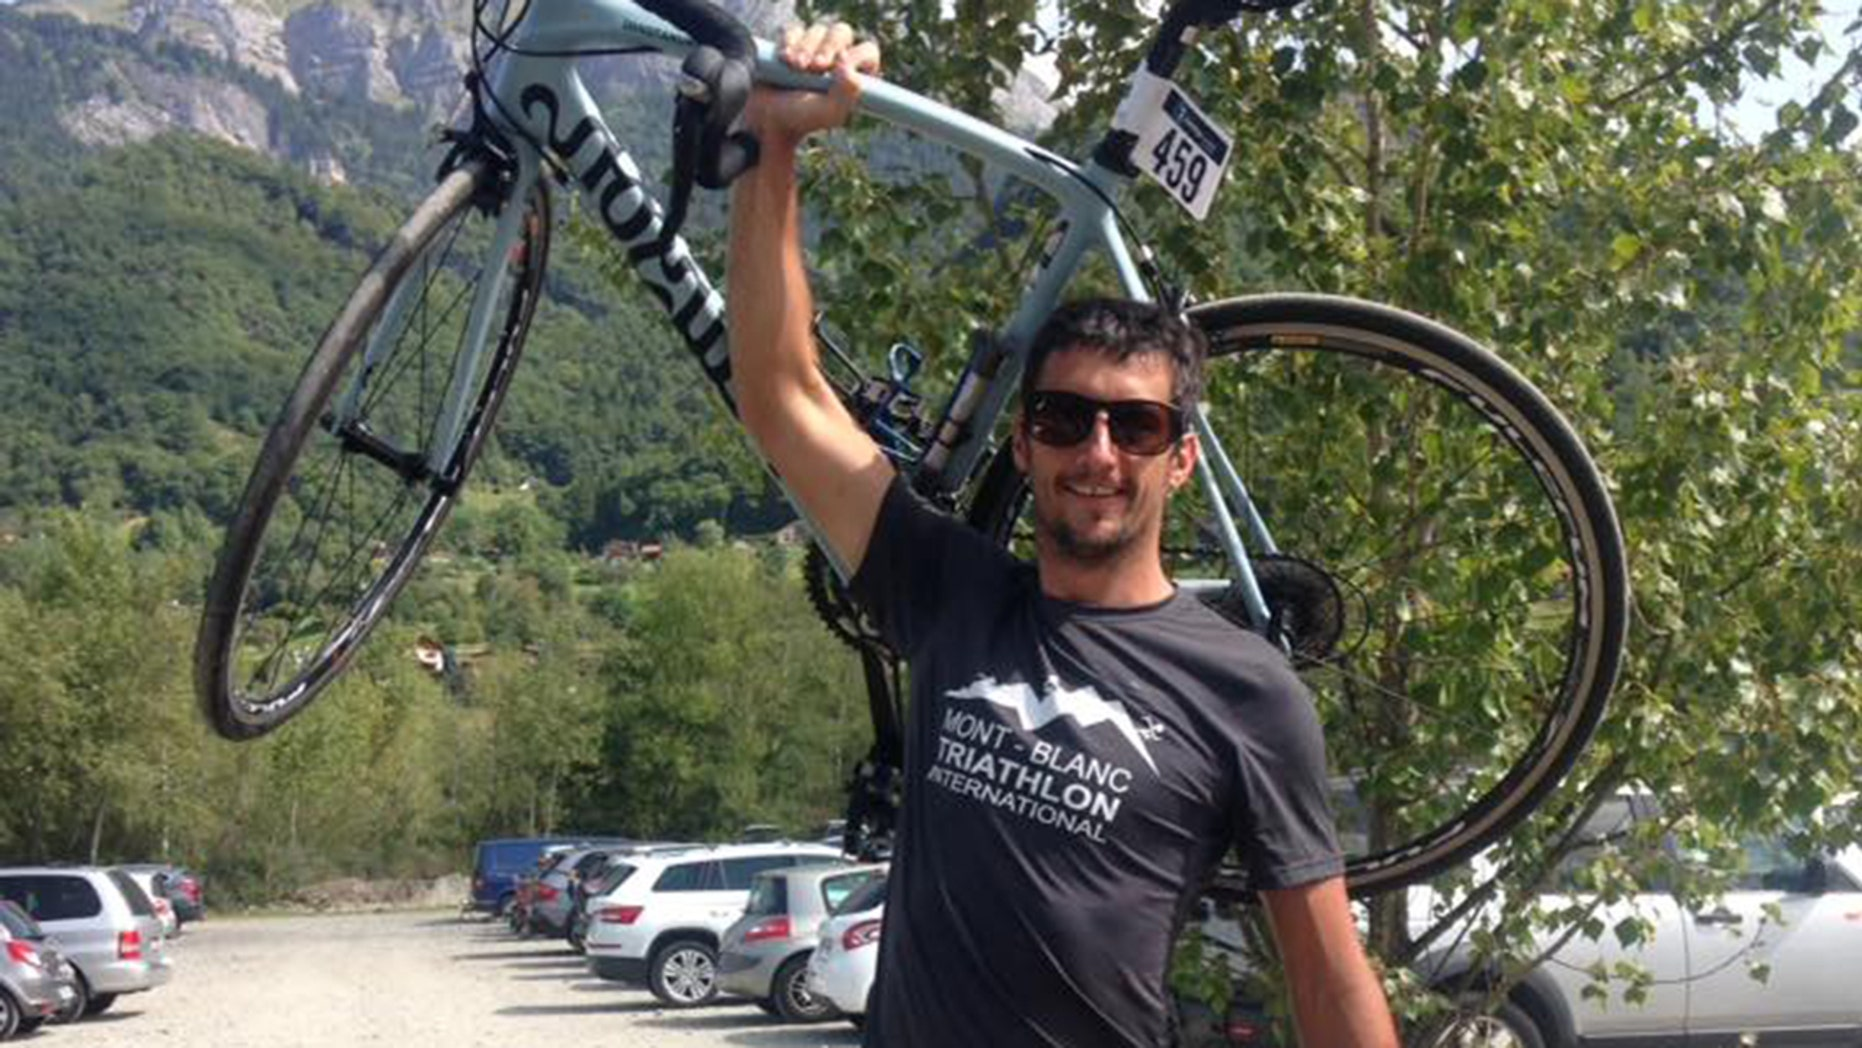 Marc Sutton was shot and killed by a hunter in the French Alps, local media reported.